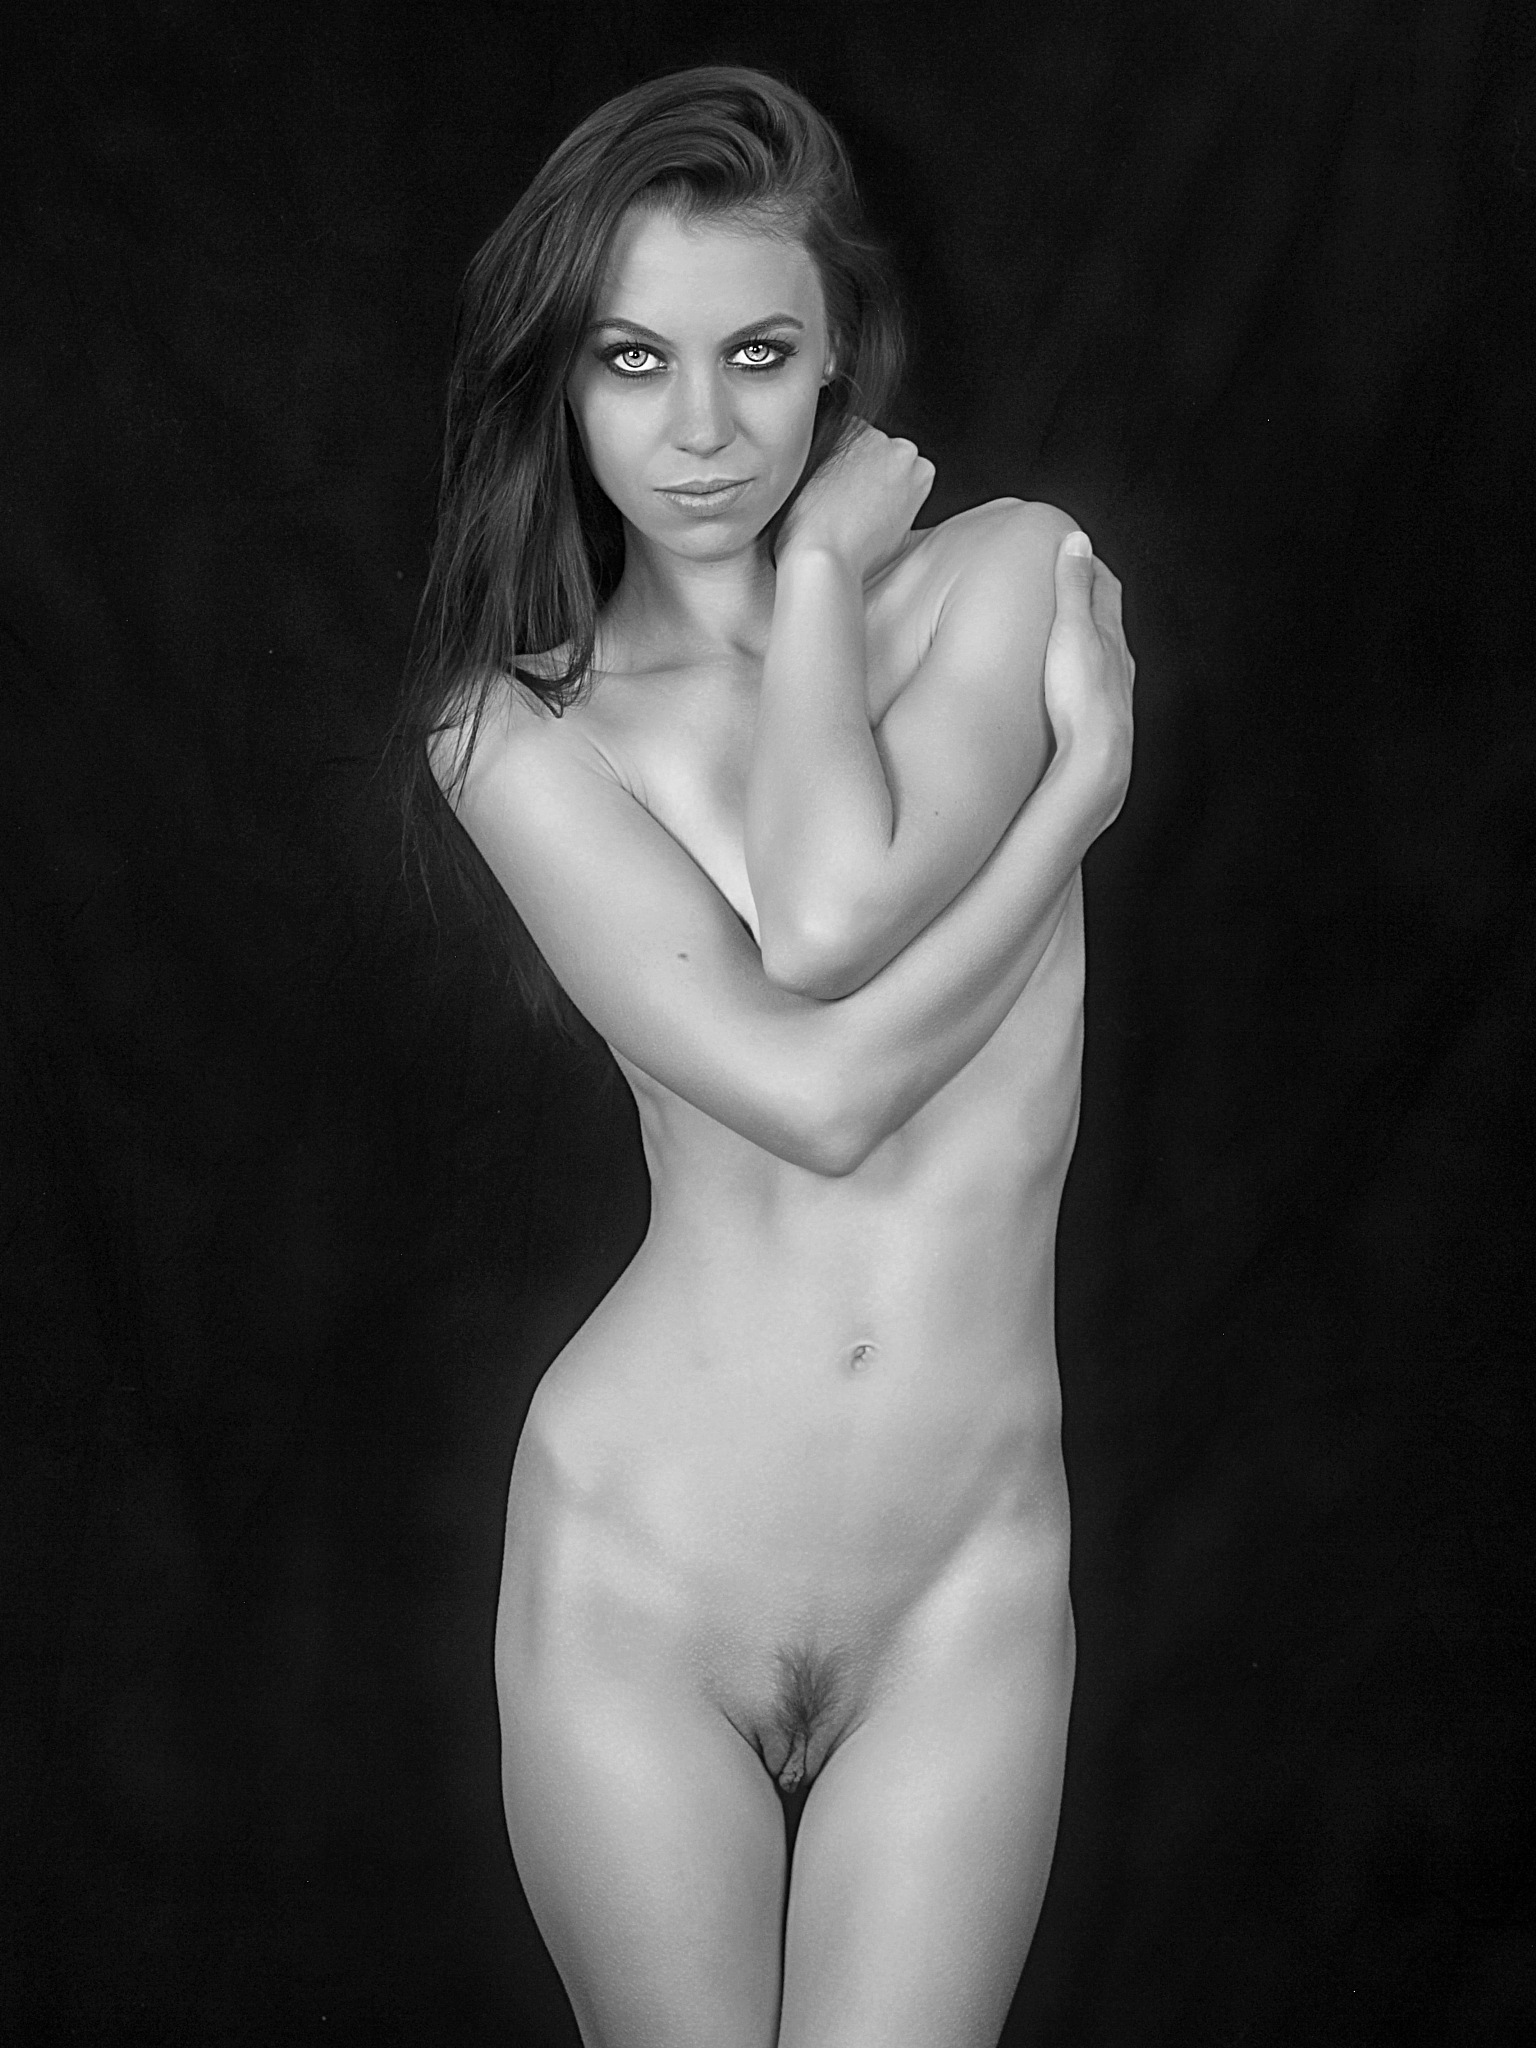 Jessica 4138 by swhiteimages